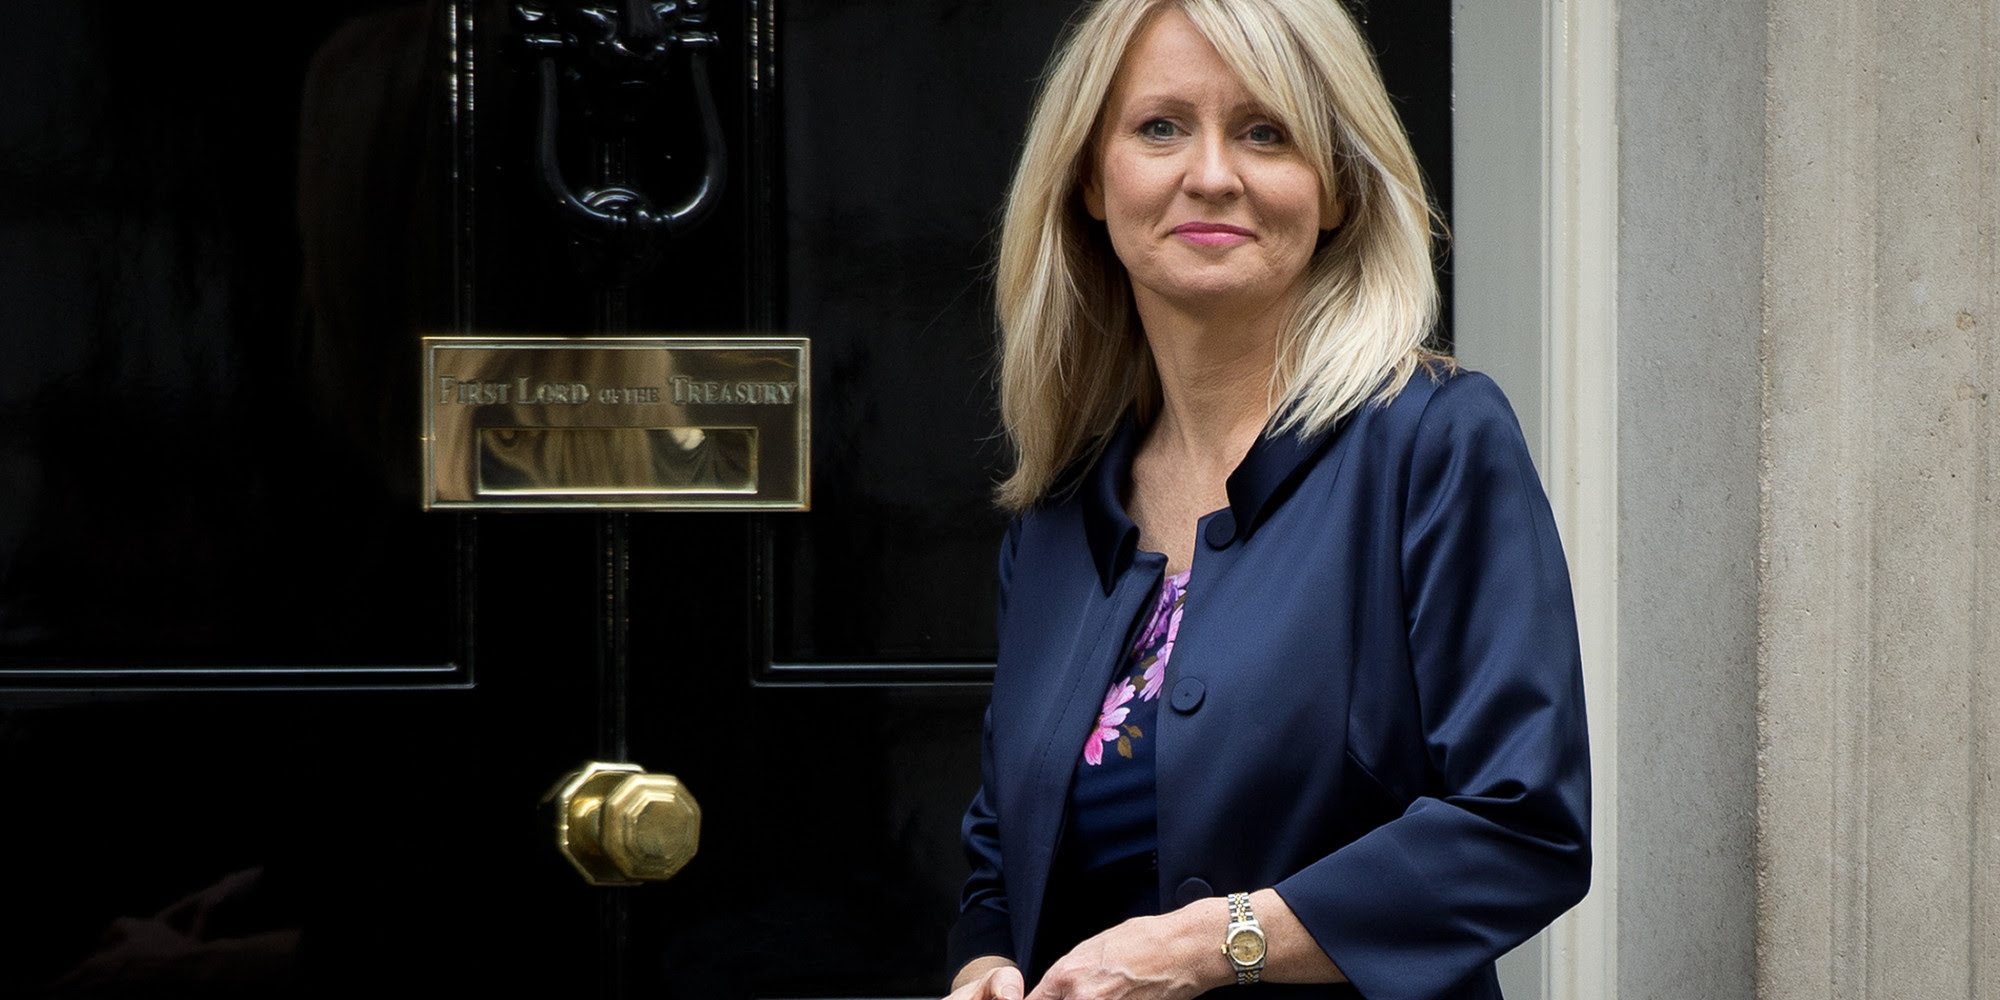 o ESTHER MCVEY facebook